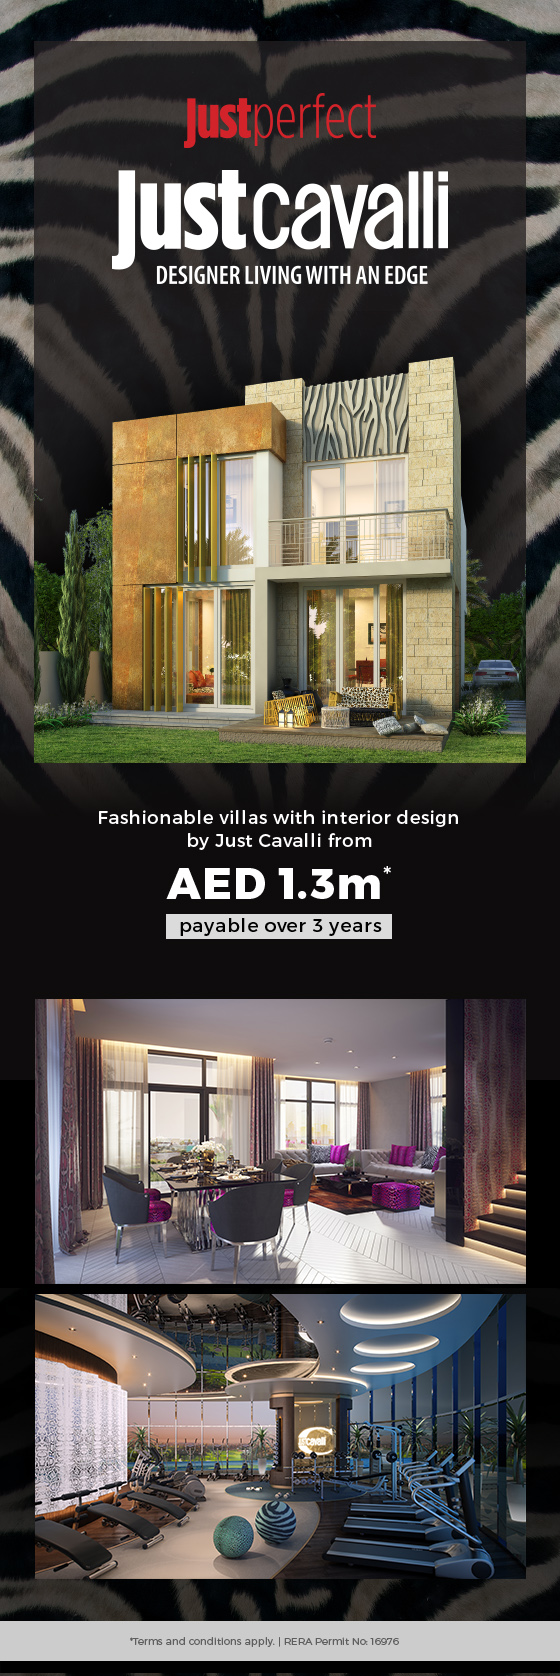 3 bed villas from AED 1.3M* | Just Cavalli @ Akoya Oxygen